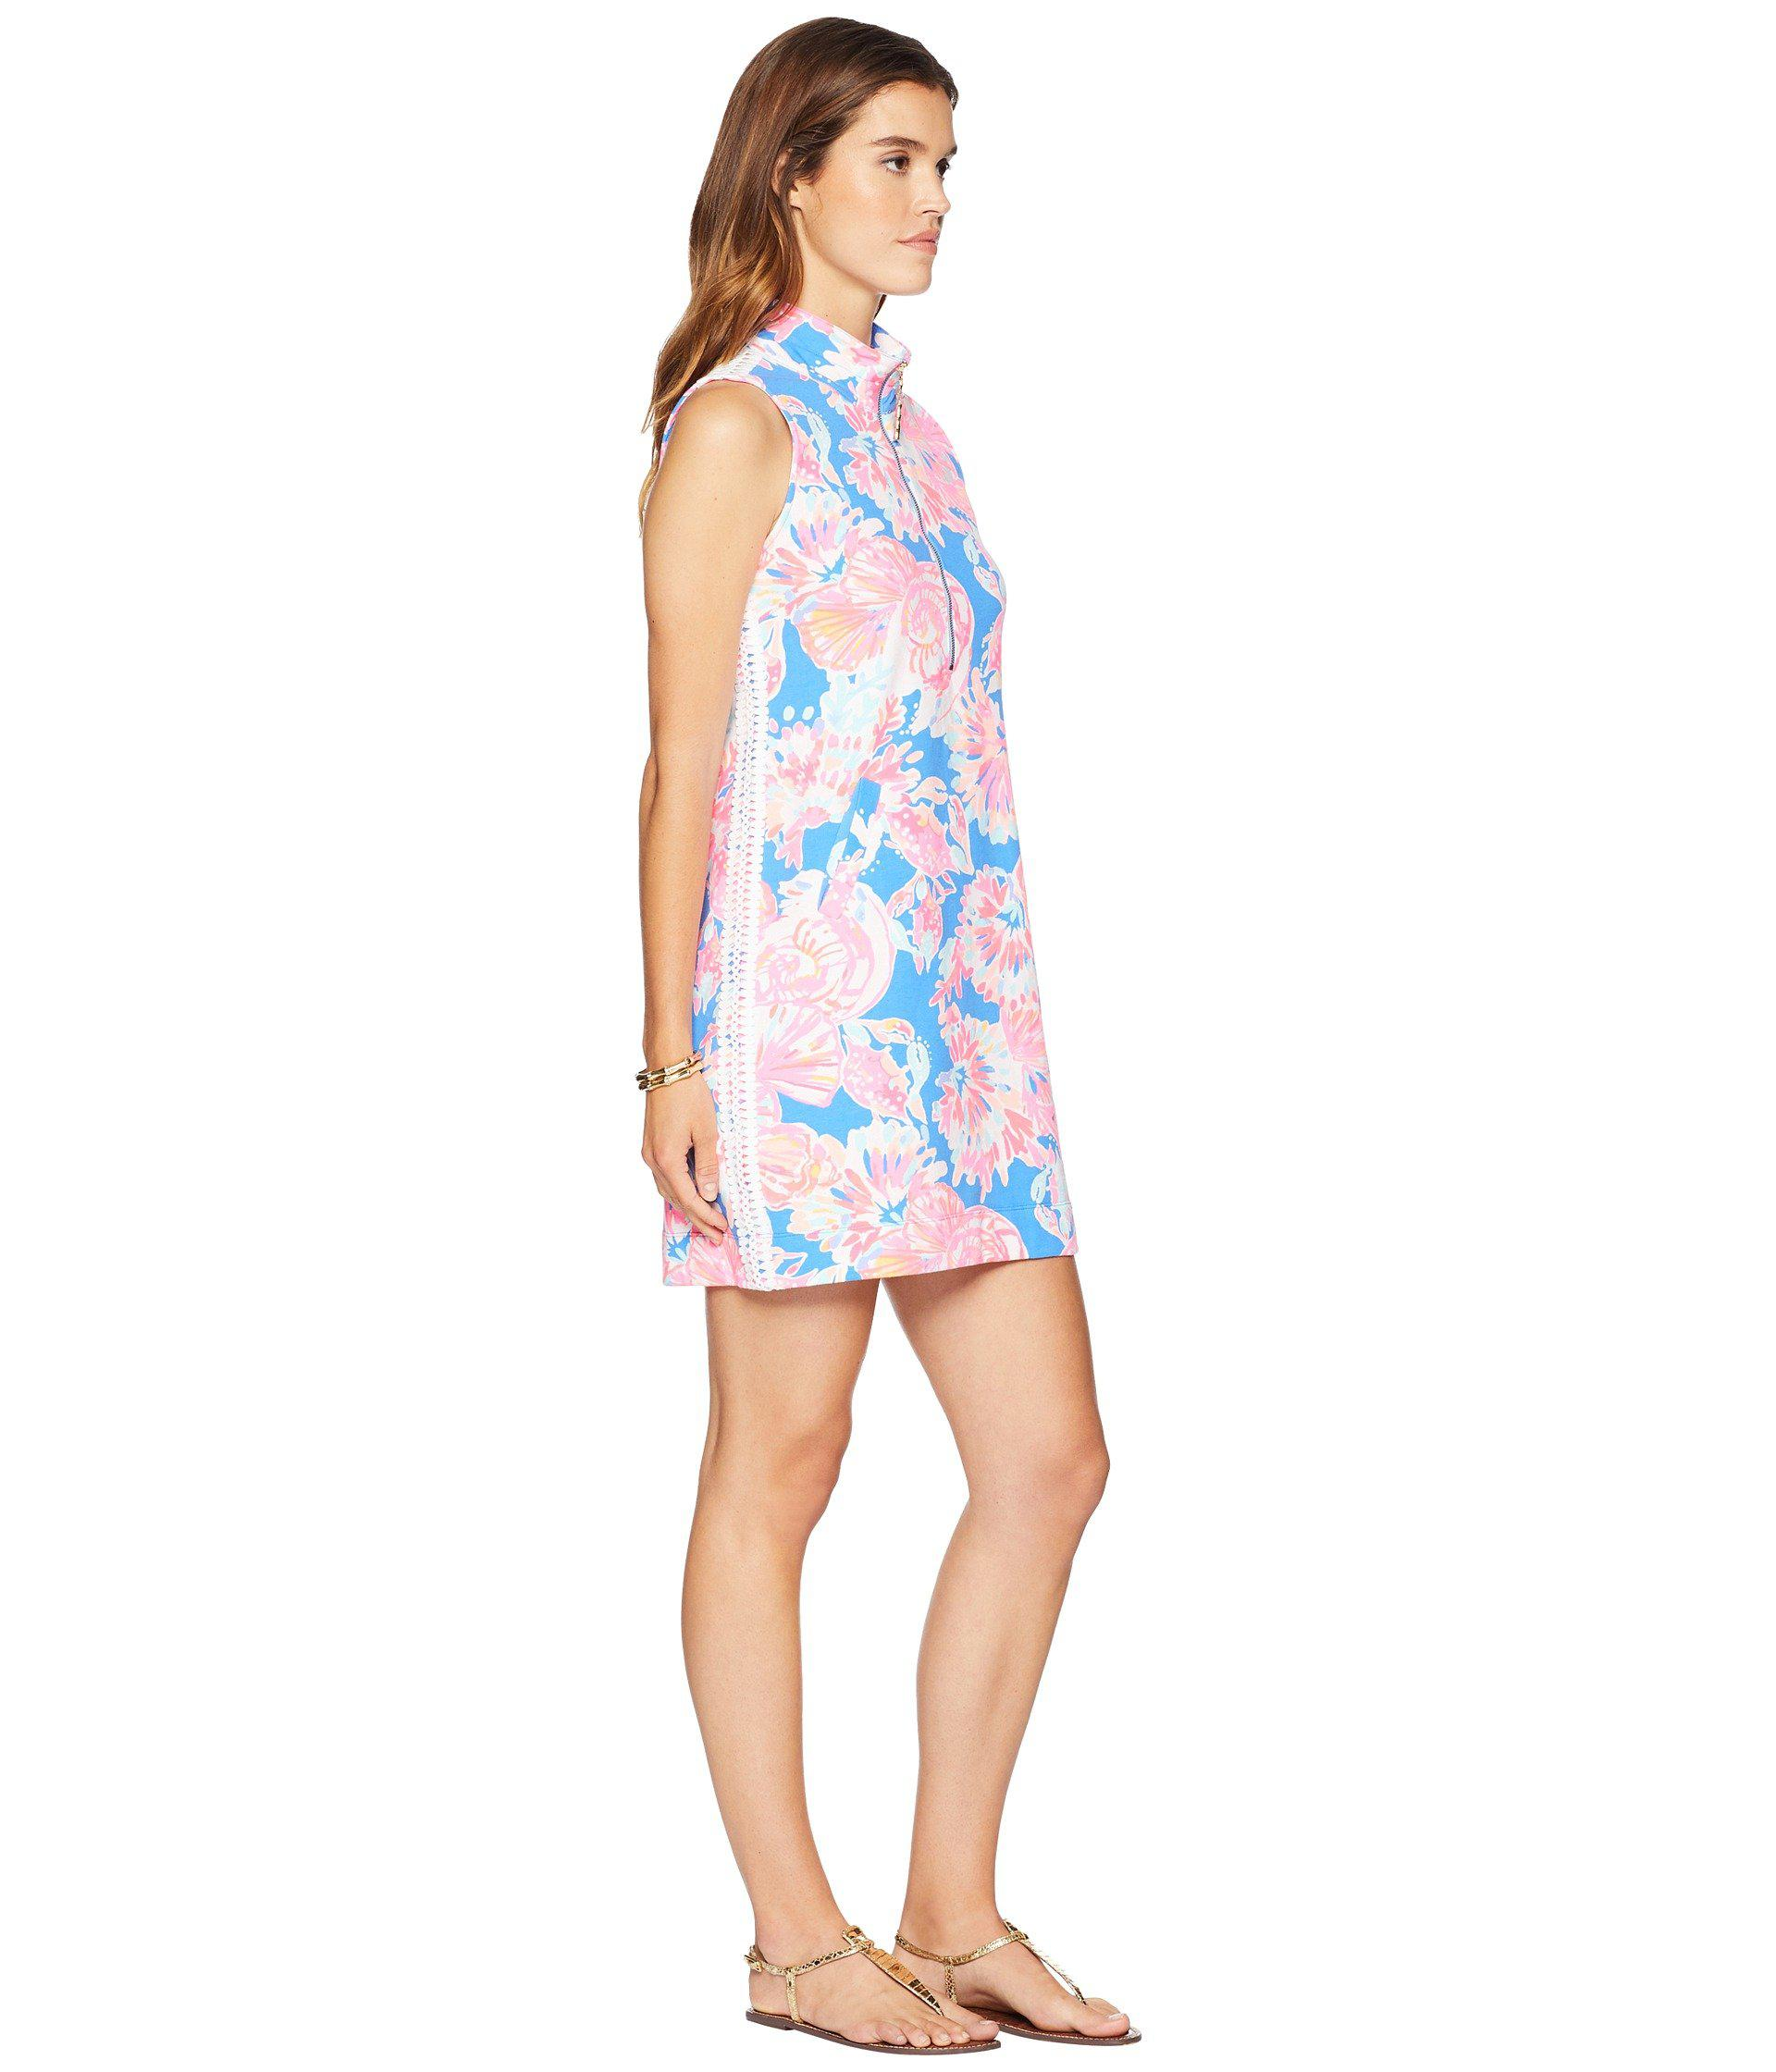 a9311a66dcd1c0 Lilly Pulitzer - Blue Skipper Sleeveless Dress - Lyst. View fullscreen